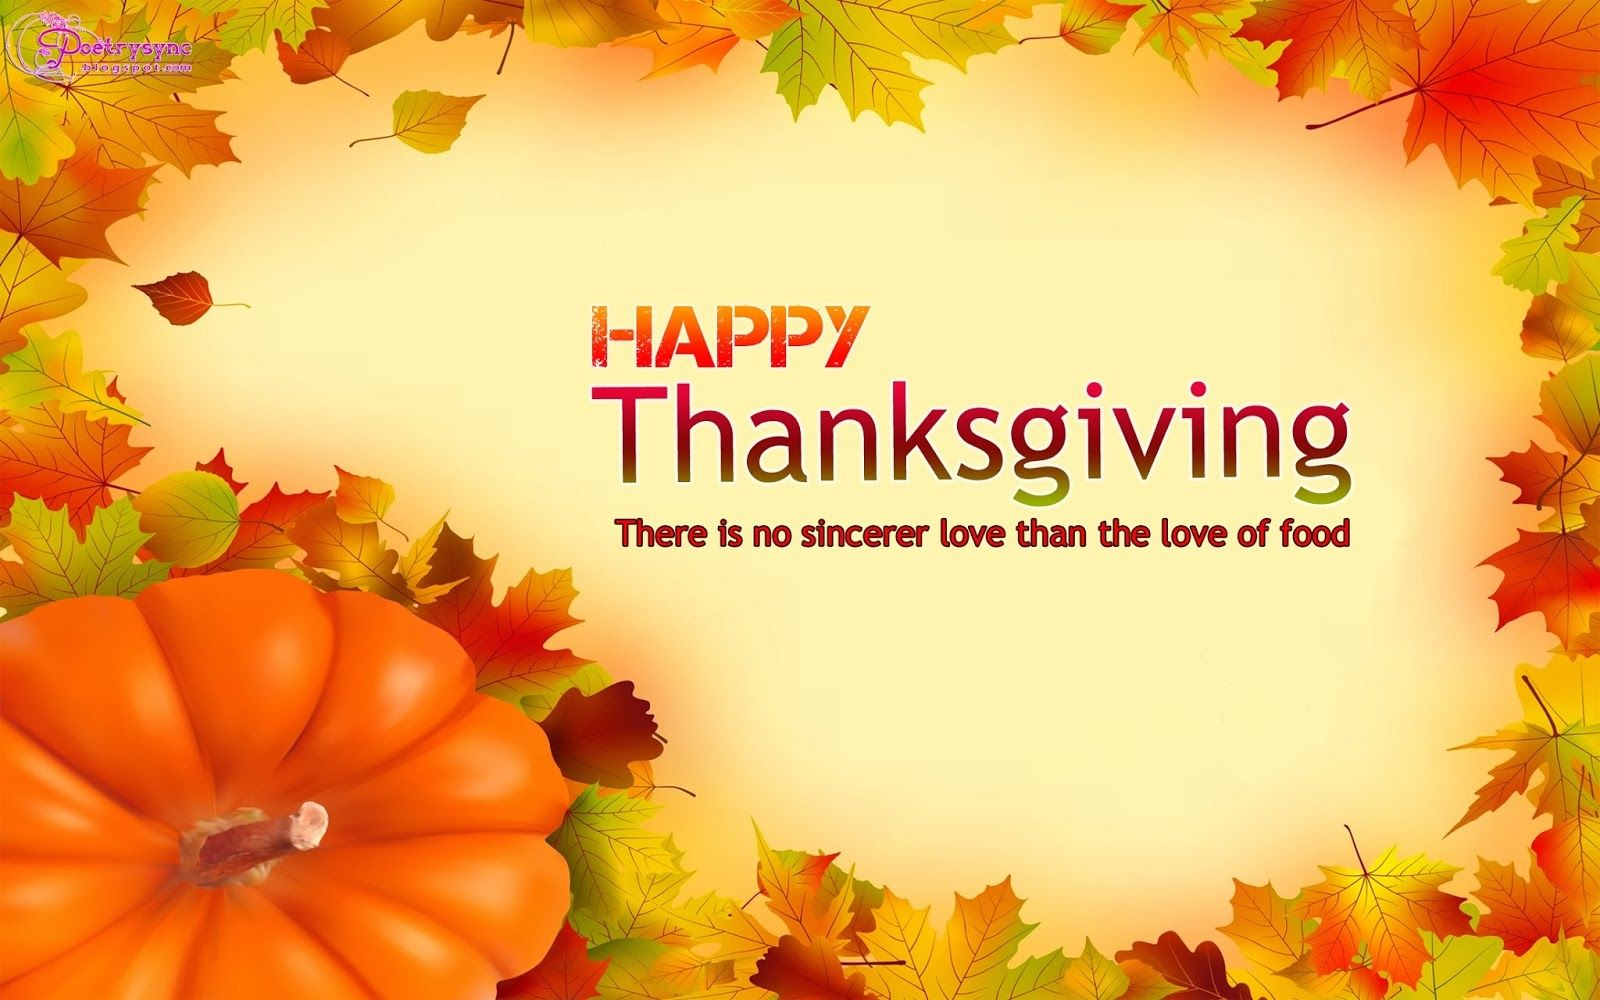 48+] Christian Thanksgiving Wallpapers